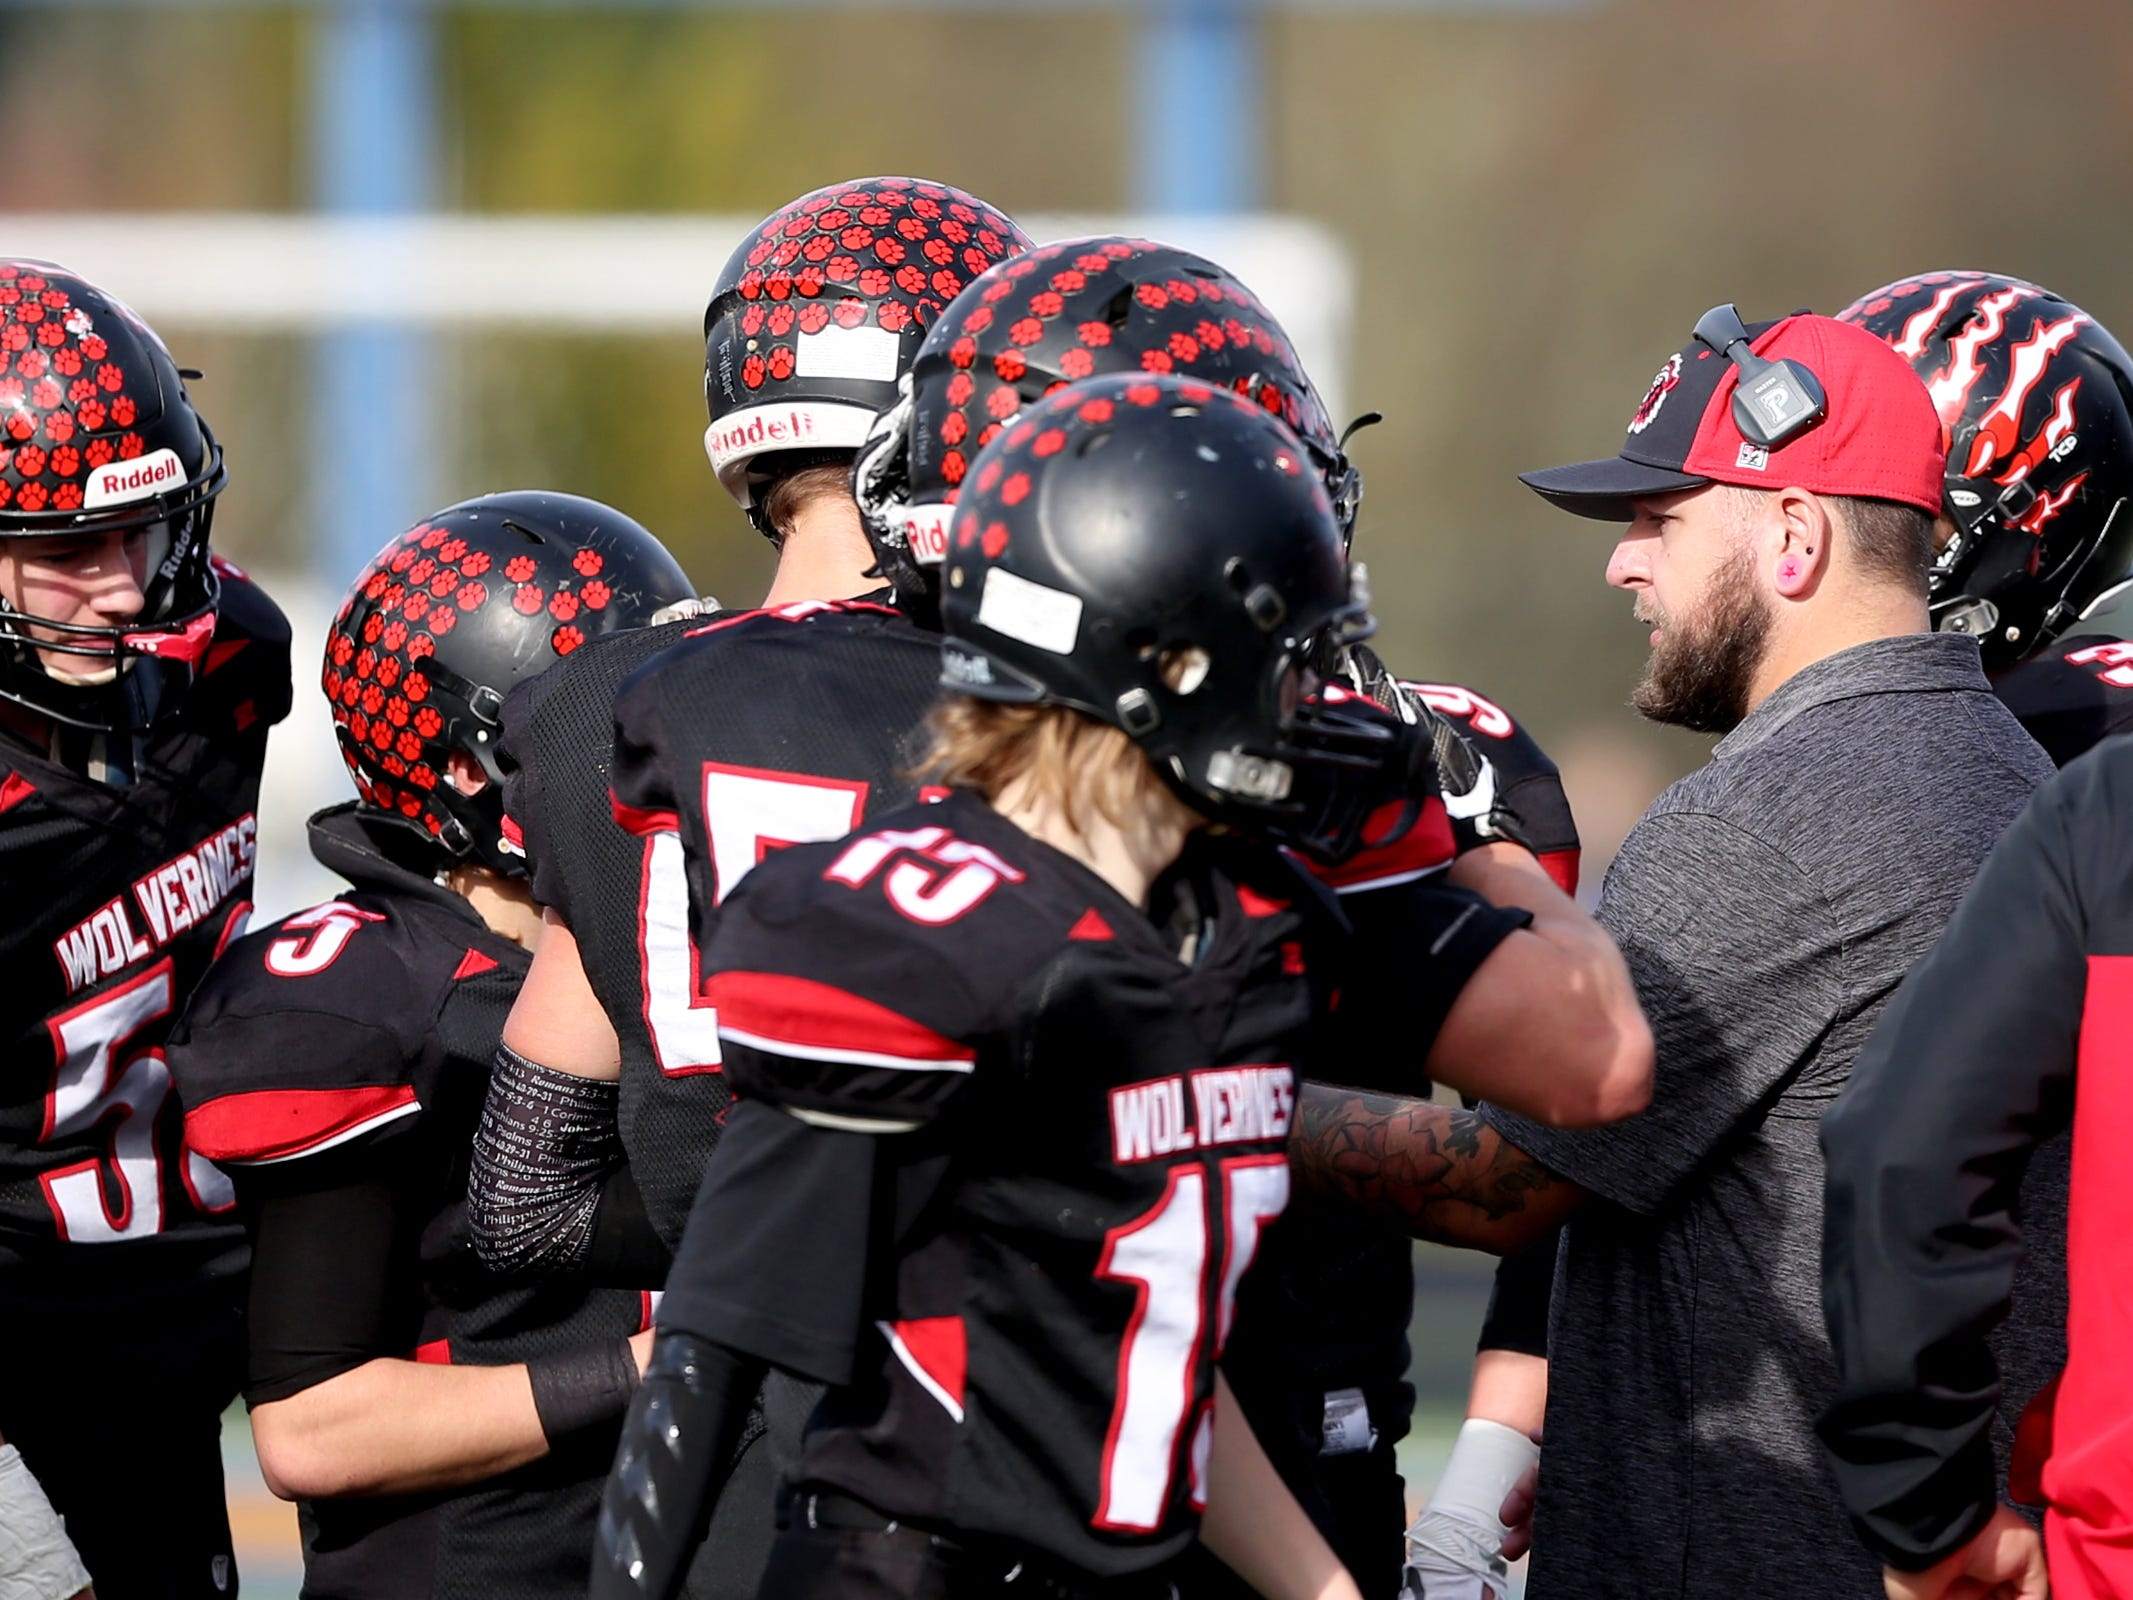 Santiam head coach Carl Rupp talks to his team during the Kennedy vs. Santiam OSAA Class 2A state championship football game at Cottage Grove High School in Cottage Grove on Saturday, Nov. 24, 2018.